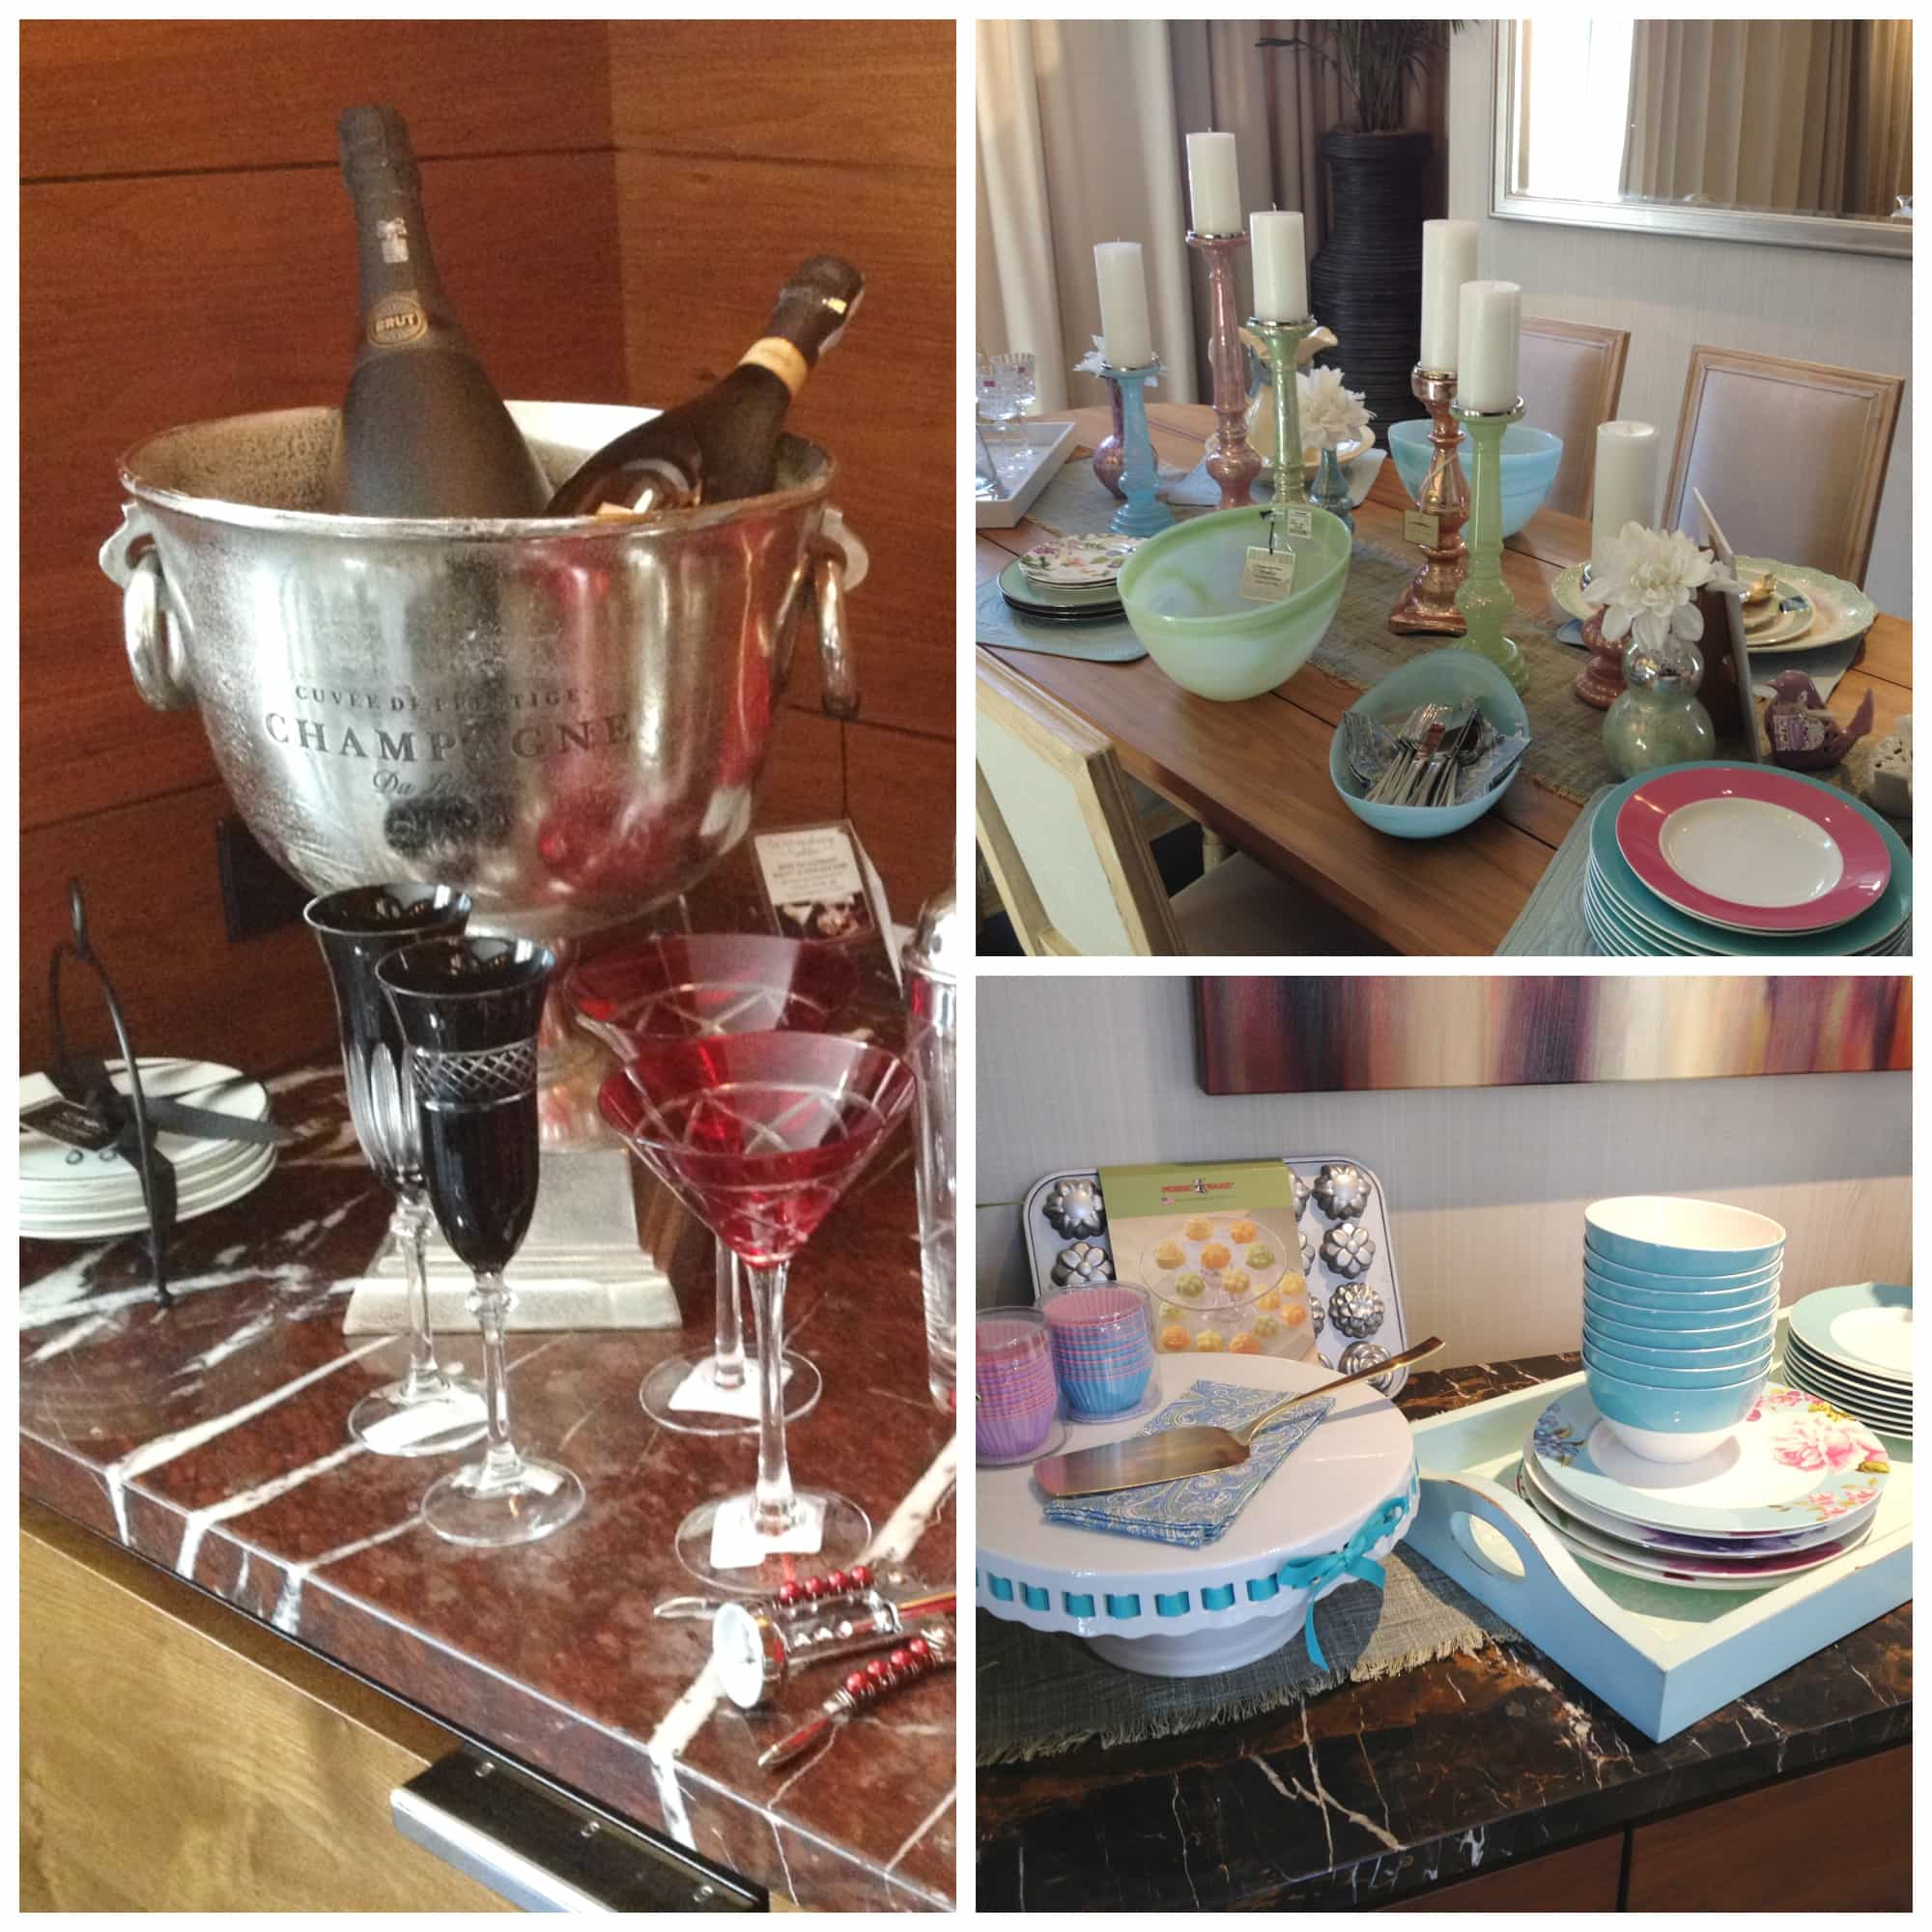 2014 OnTrend Furnishings And Home Dcor At TJ Maxx  Marshalls  Lady and the Blog